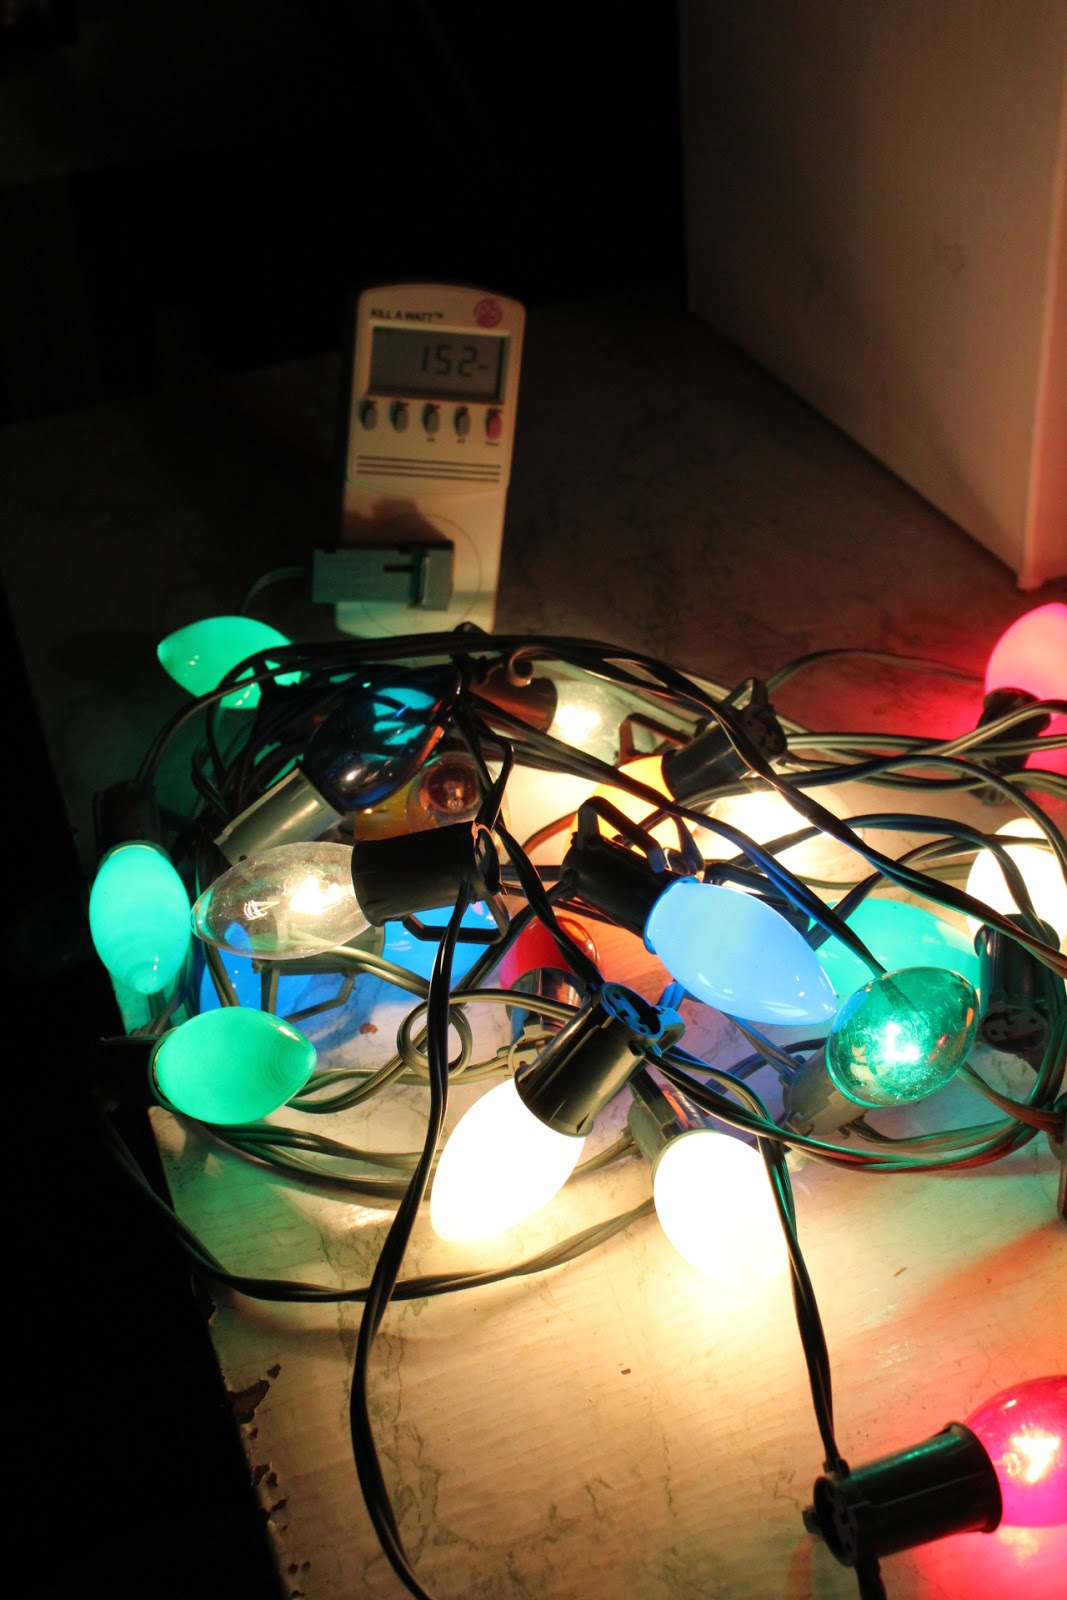 c9 incandescents about 160 watts - Philips C9 Led Christmas Lights